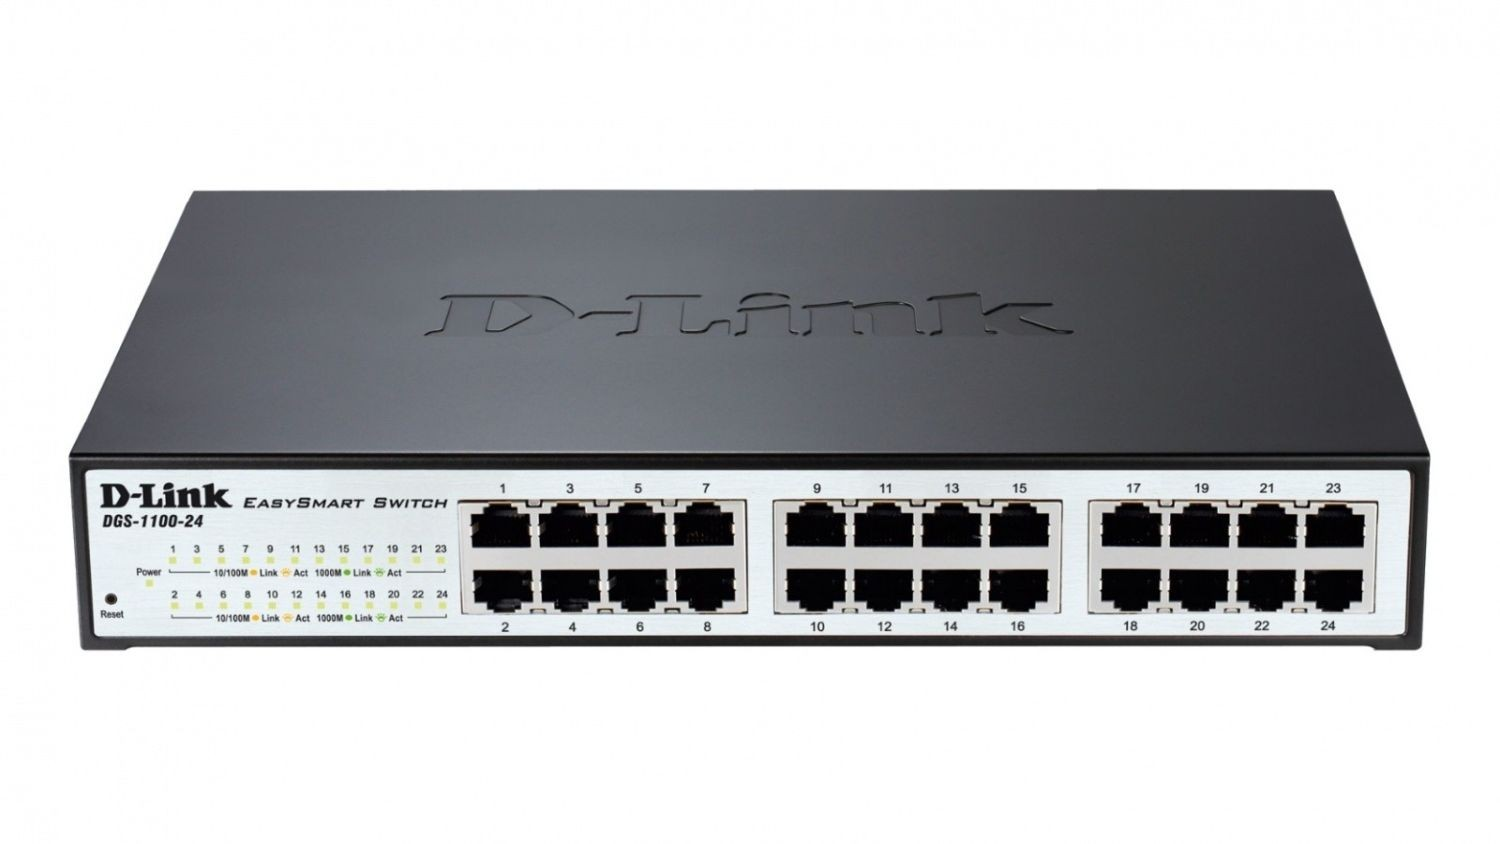 D-Link 24-port 10/100/1000 EasySmart Switch